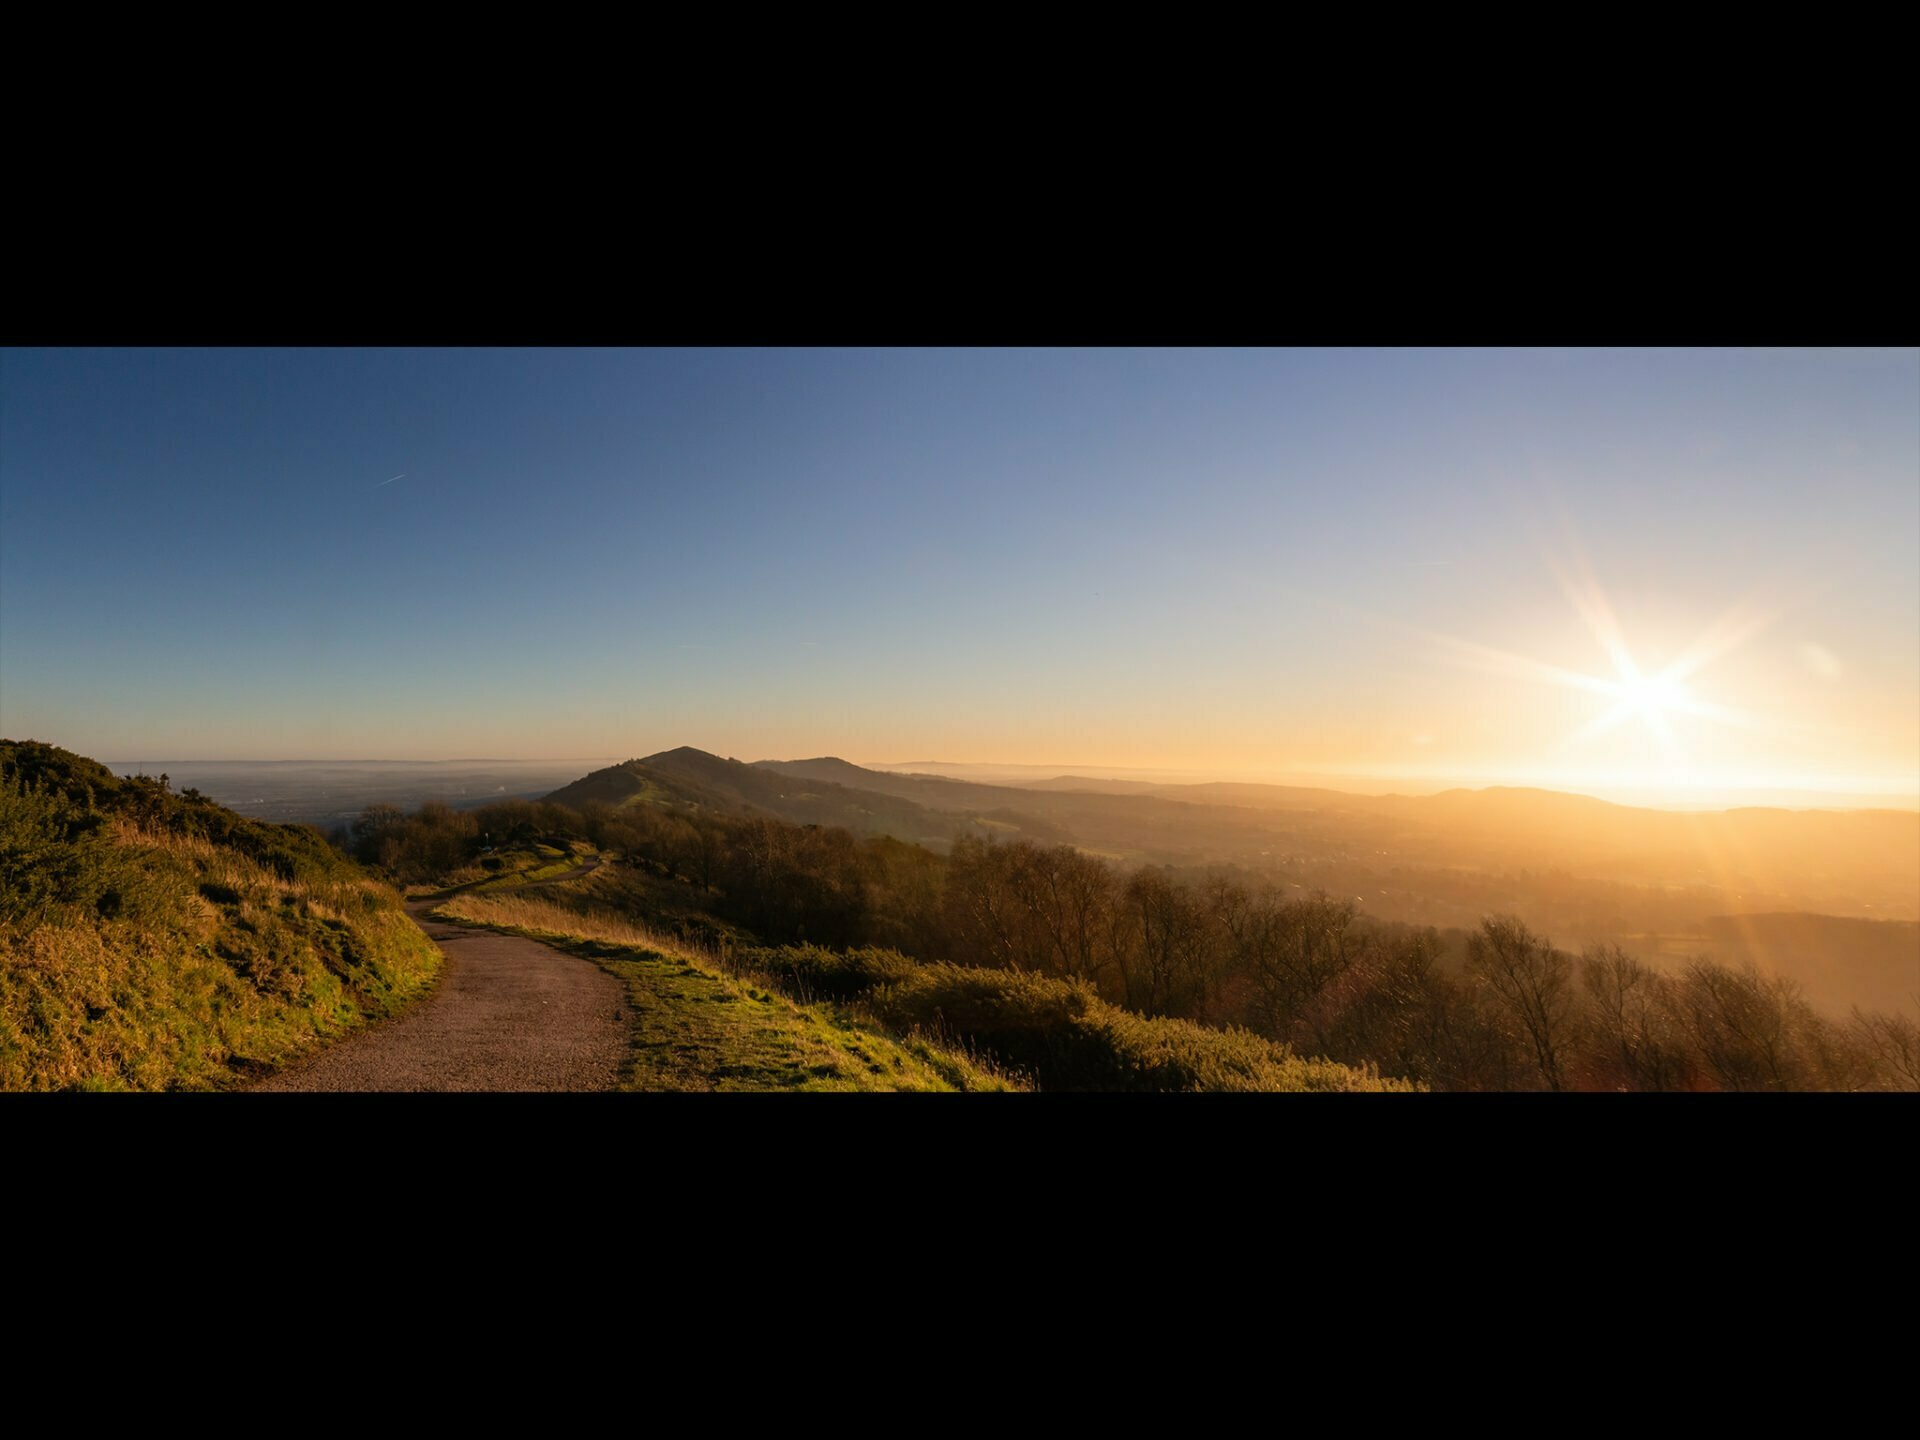 Malvern hills at sunset